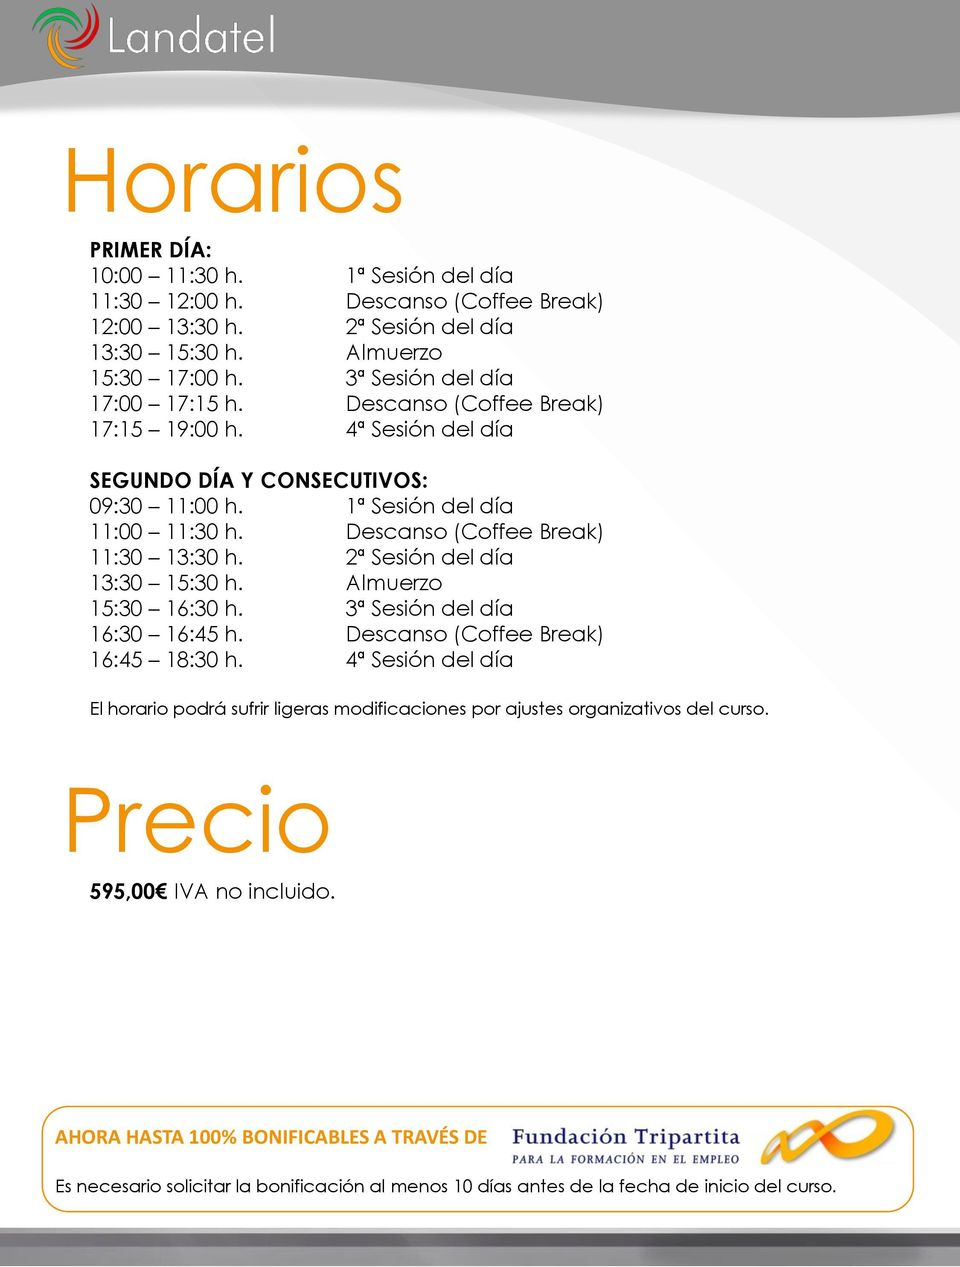 Descanso (Coffee Break) 11:30 13:30 h. 2ª Sesión del día 13:30 15:30 h. Almuerzo 15:30 16:30 h. 3ª Sesión del día 16:30 16:45 h. Descanso (Coffee Break) 16:45 18:30 h.